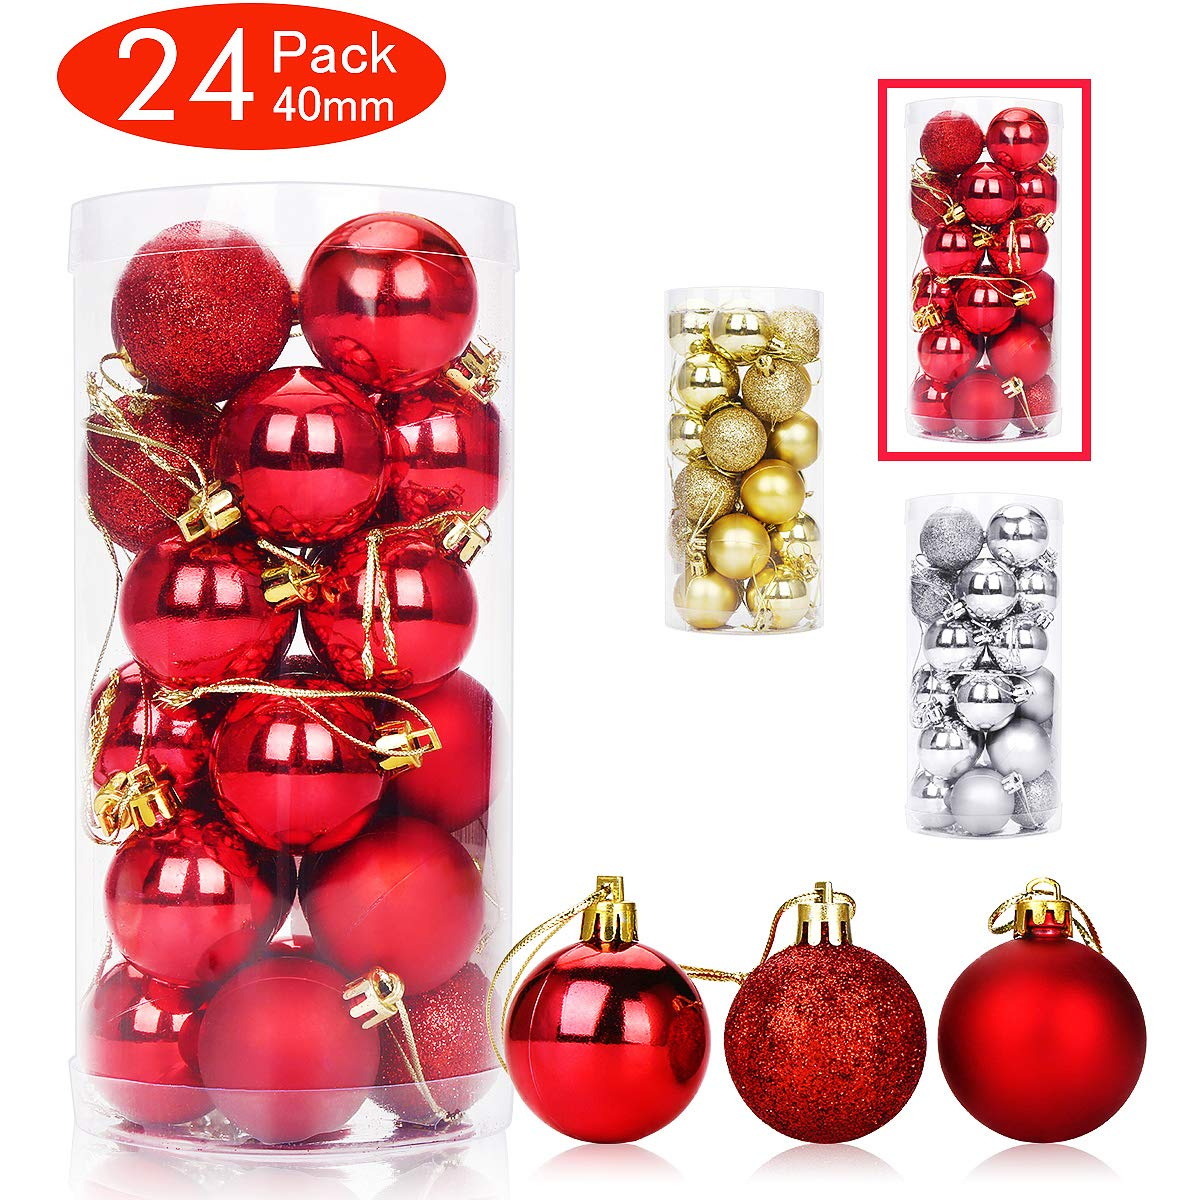 Aitsite 24 Pack Christmas Tree Ornaments Set 1.57 inches Mini Shatterproof Holiday Ornaments Balls for Christmas Decorations (Red)